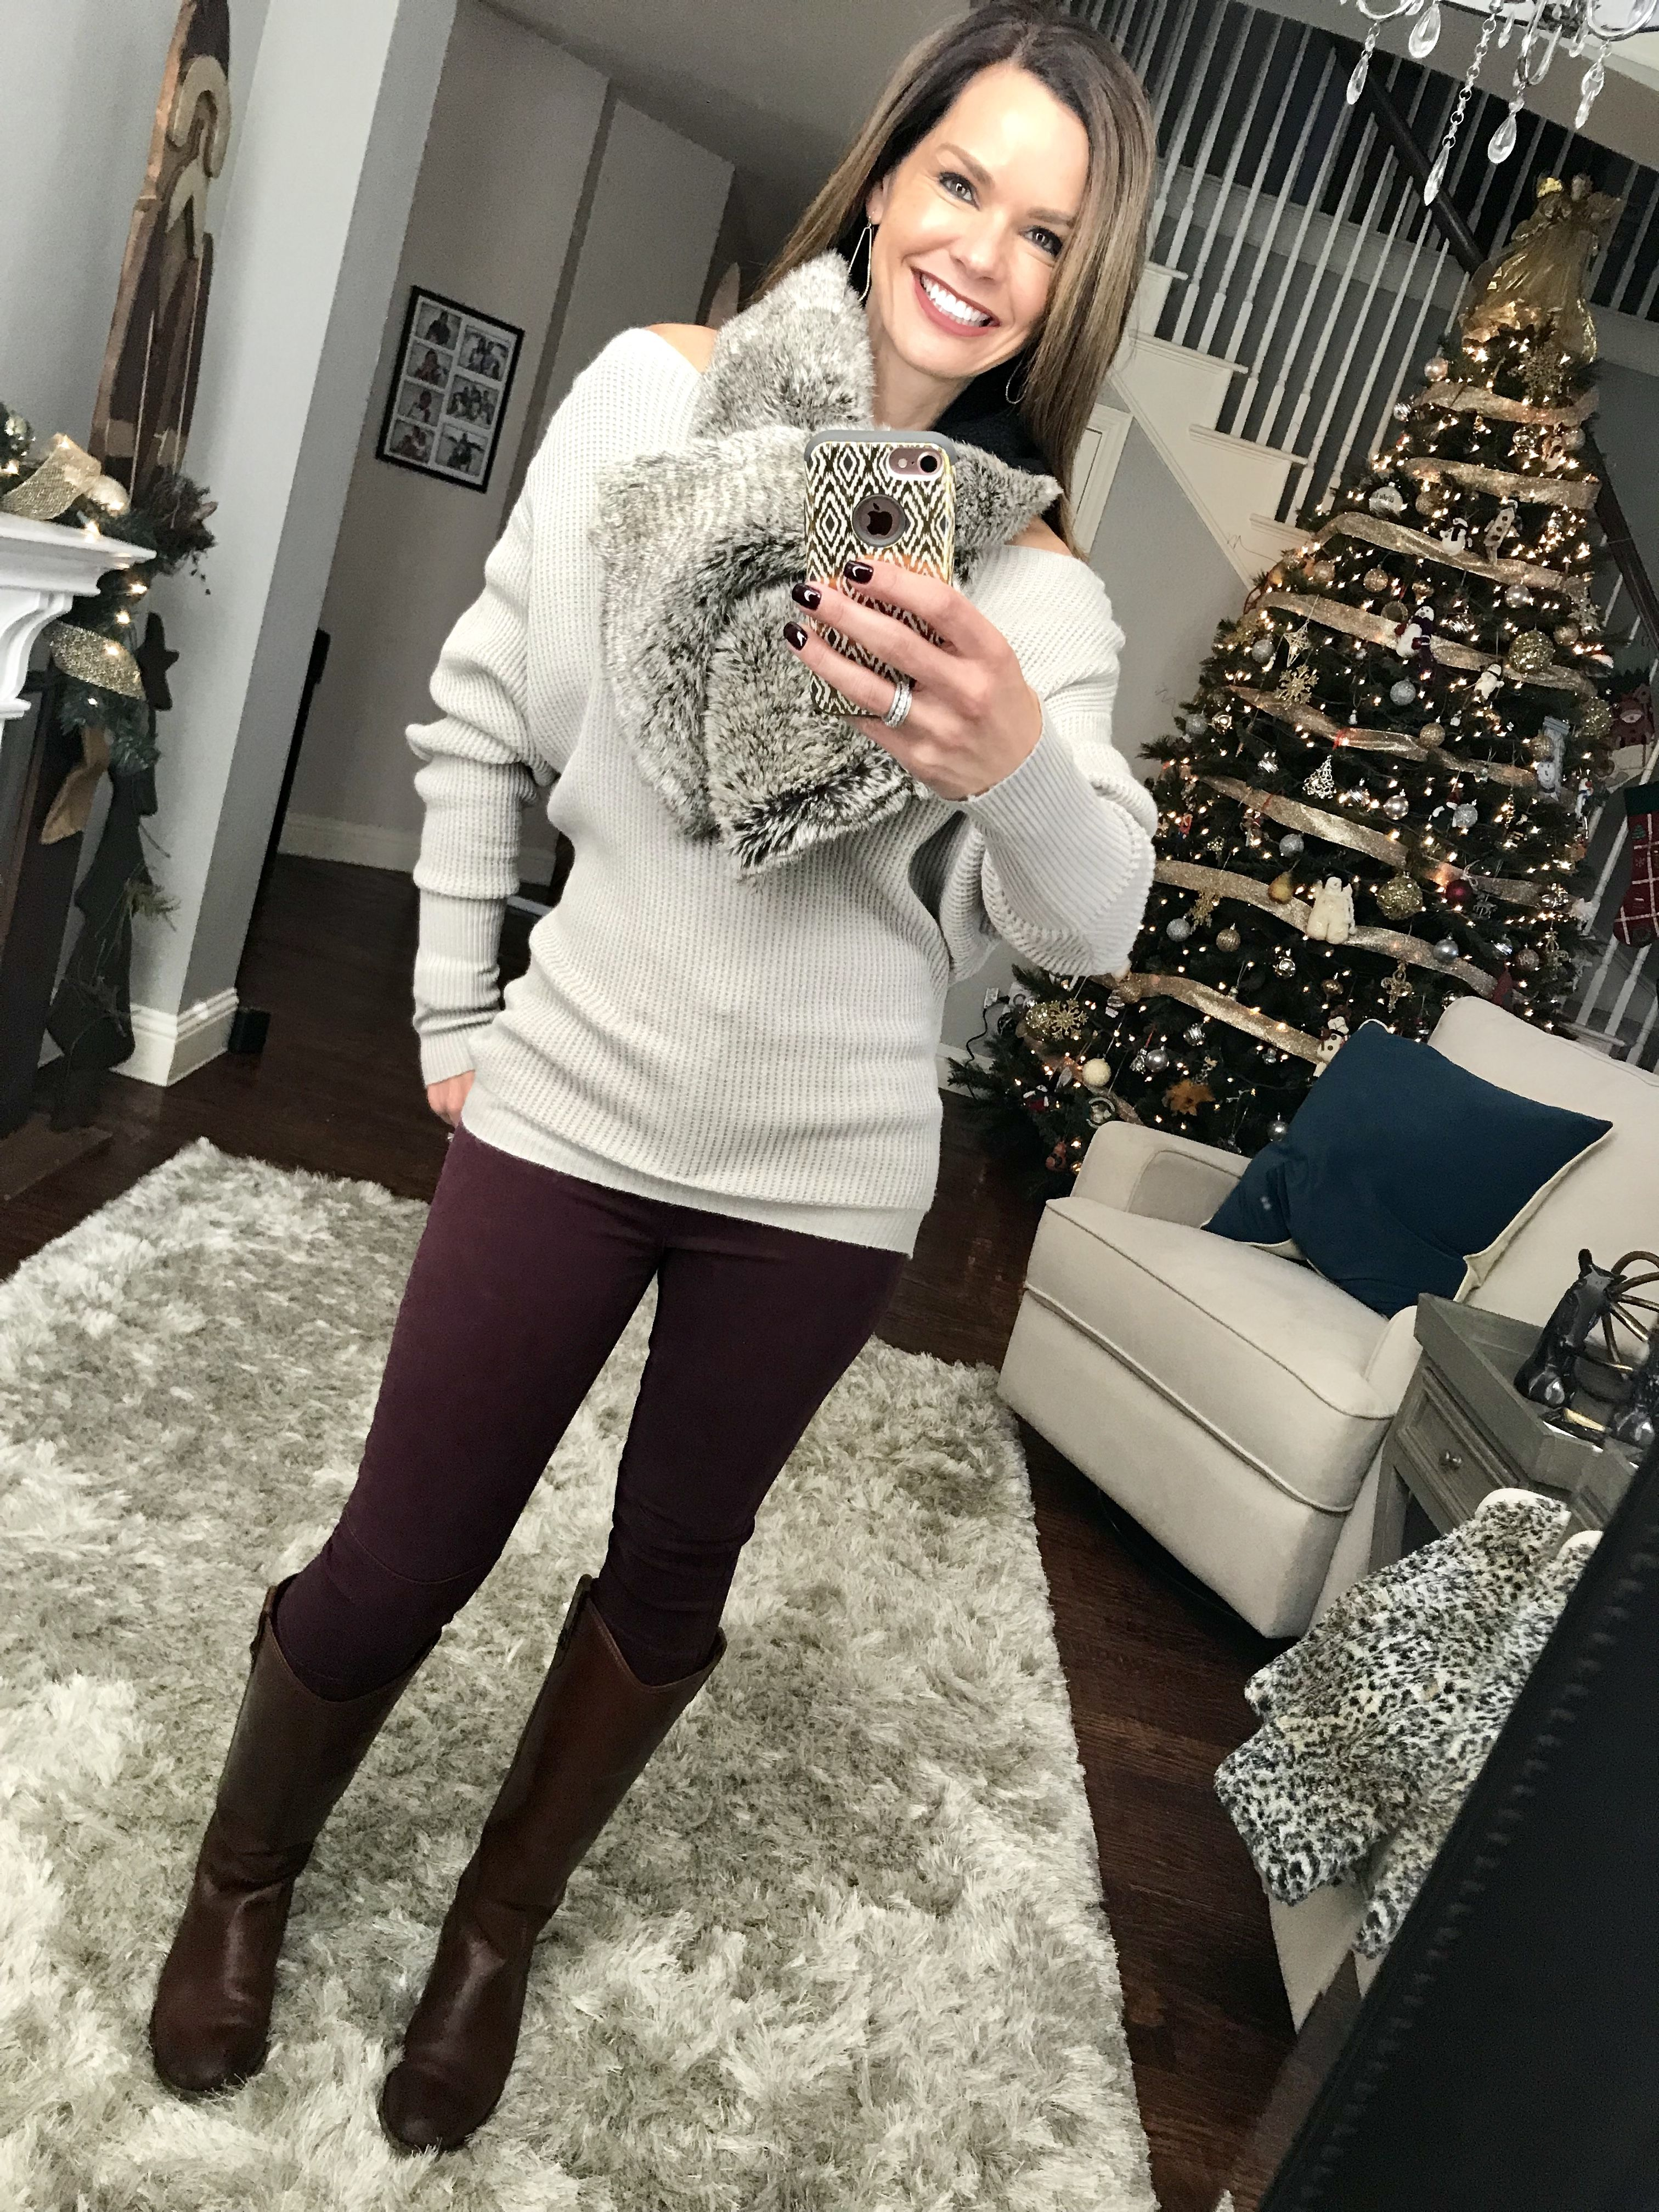 Three Casual Christmas Outfits from Your Closet